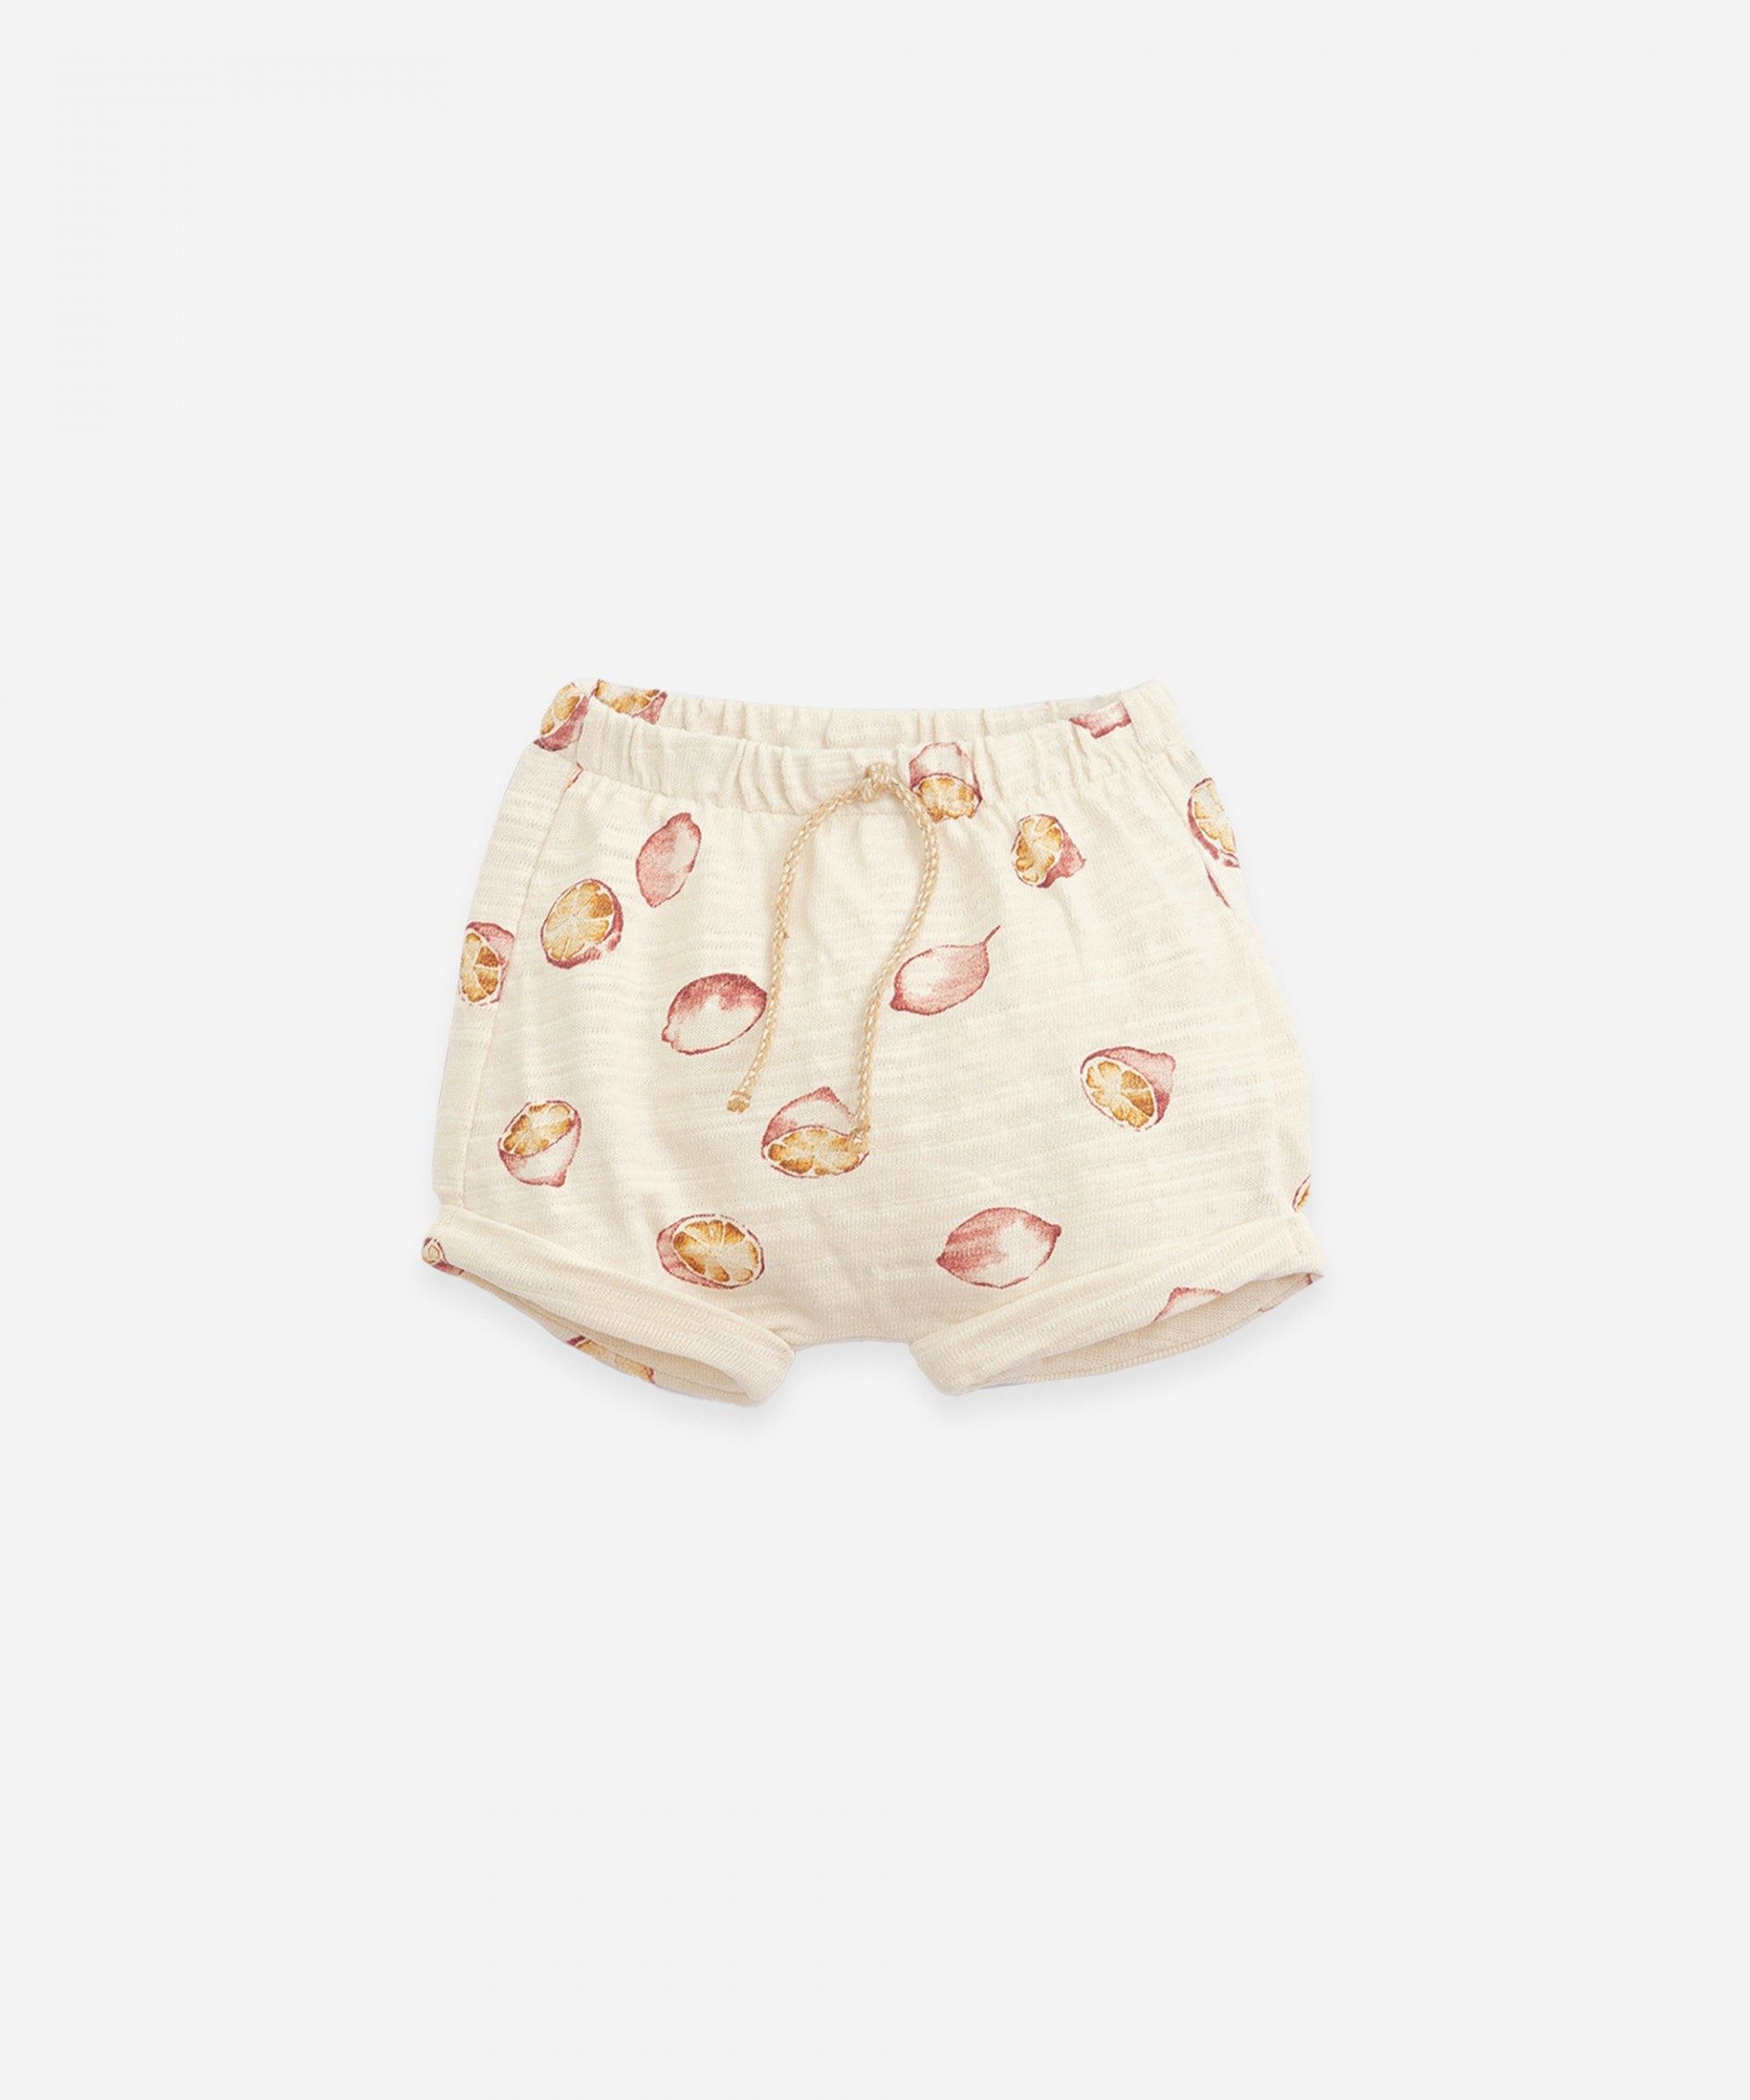 Shorts in organic cotton with pleats| Botany